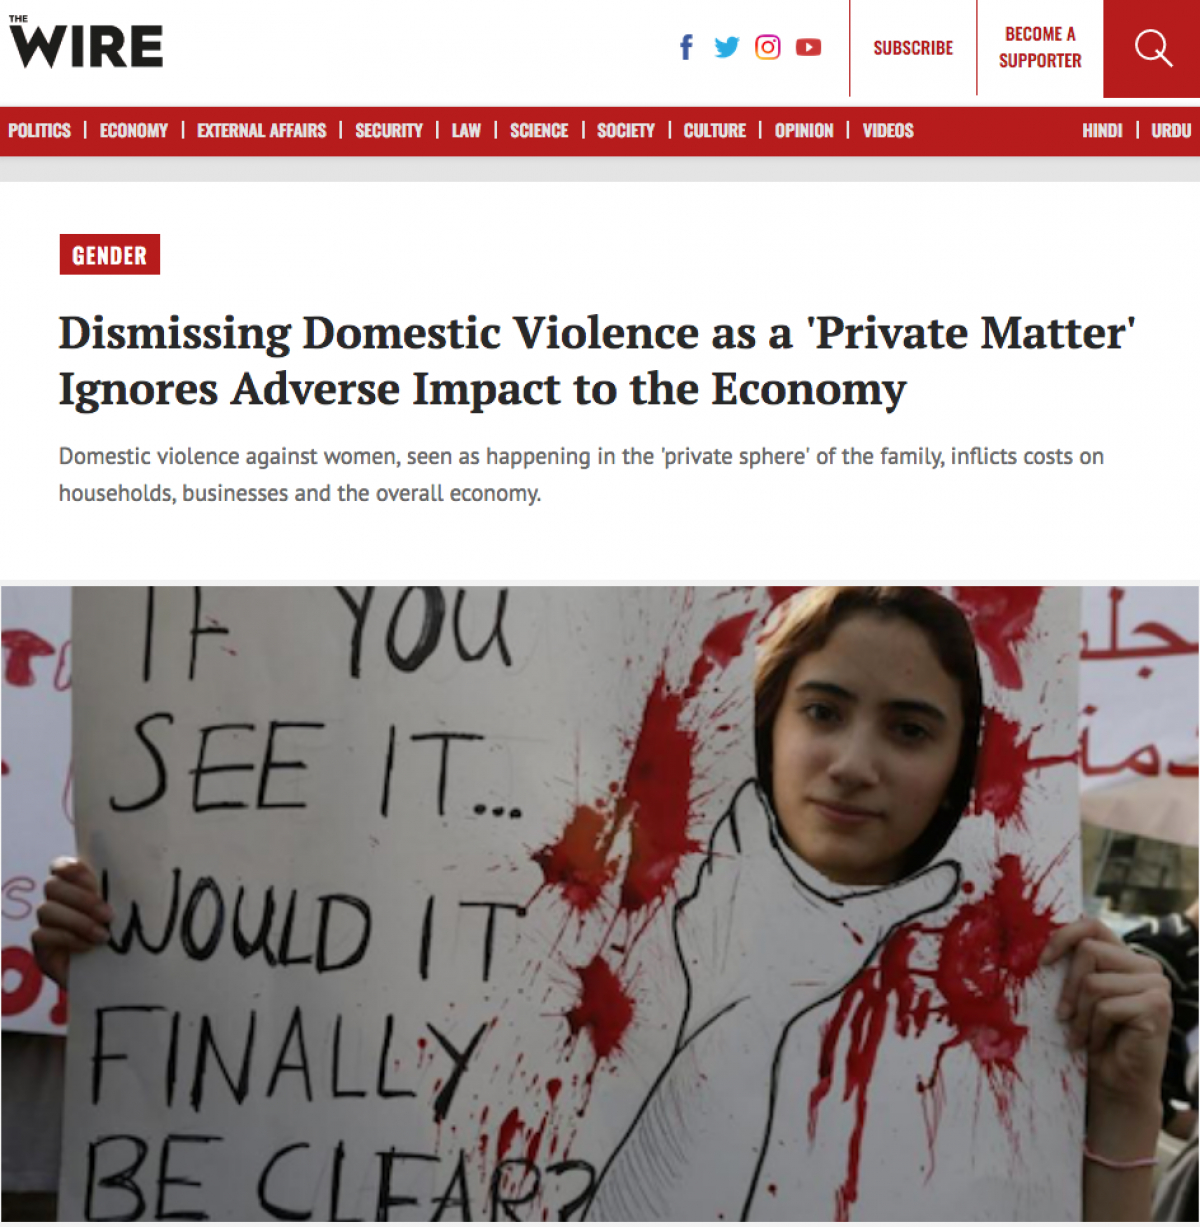 Dismissing Domestic Violence as a 'Private Matter' Ignores Adverse Impact to the Economy